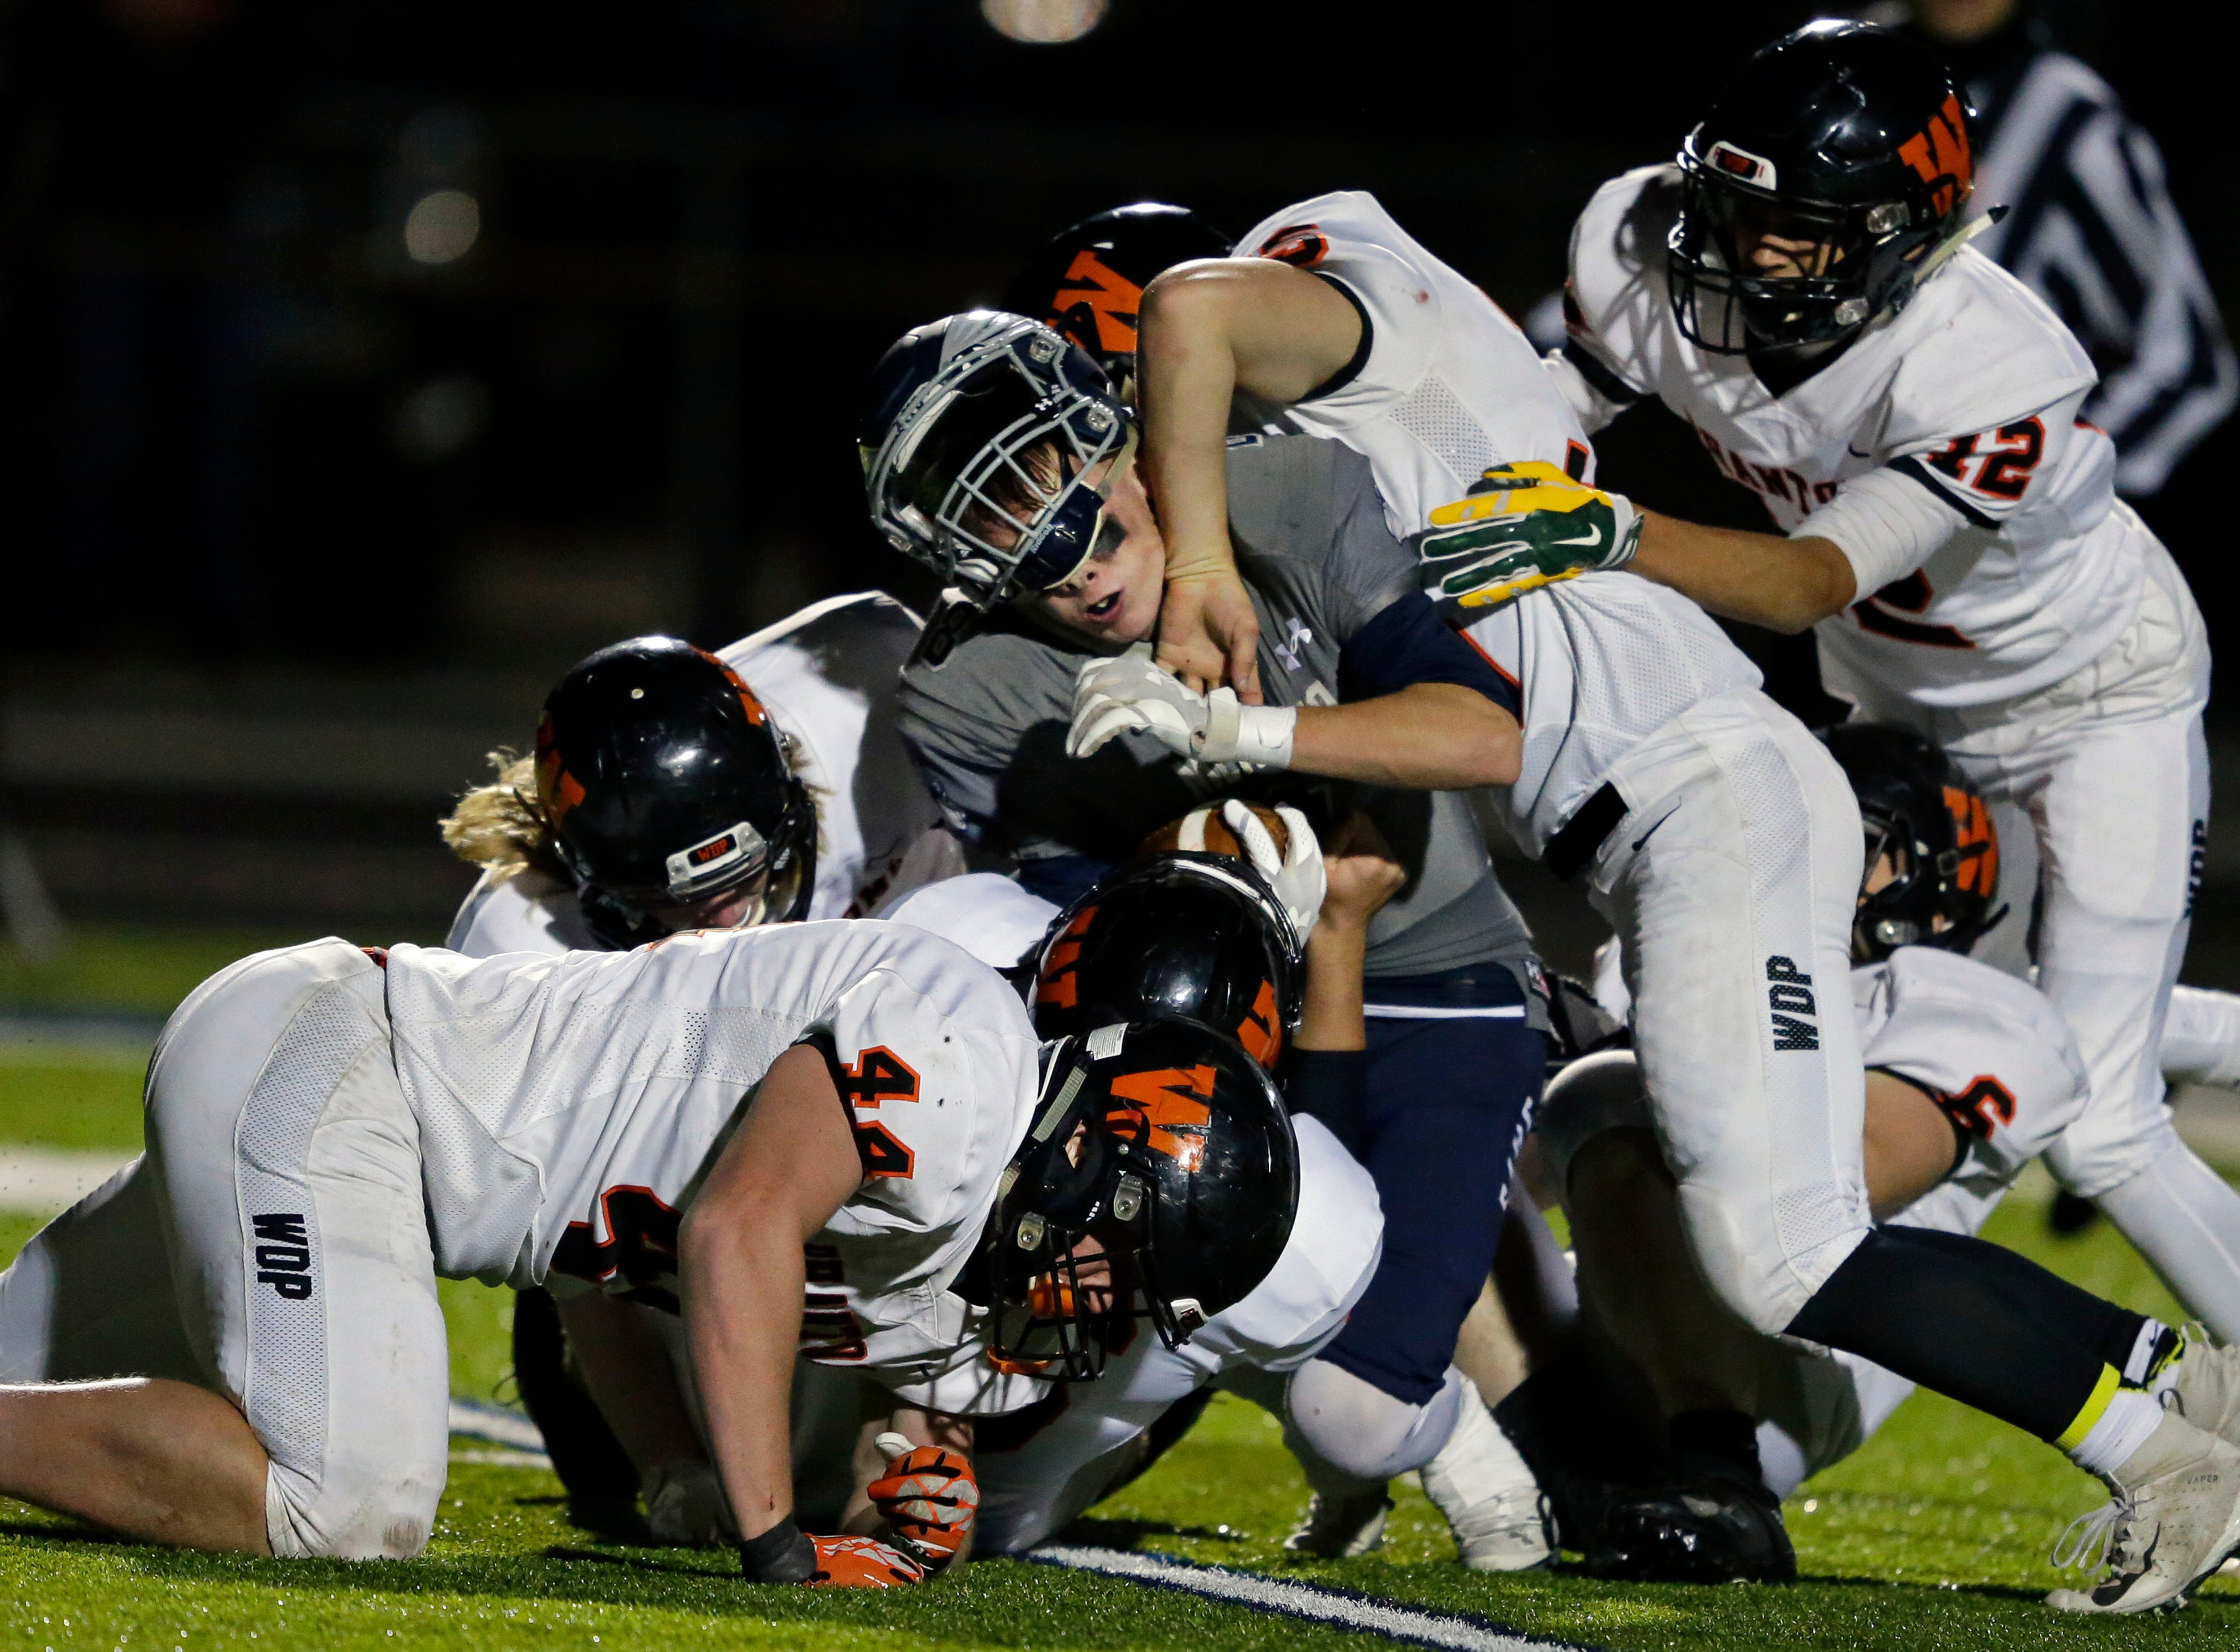 Brady Jurgella of Menasha loses his helmet as the West De Pere defense tackles him in a Bay Conference football game Friday, September 28, 2018, at Calder Stadium in Menasha, Wis.Ron Page/USA TODAY NETWORK-Wisconsin